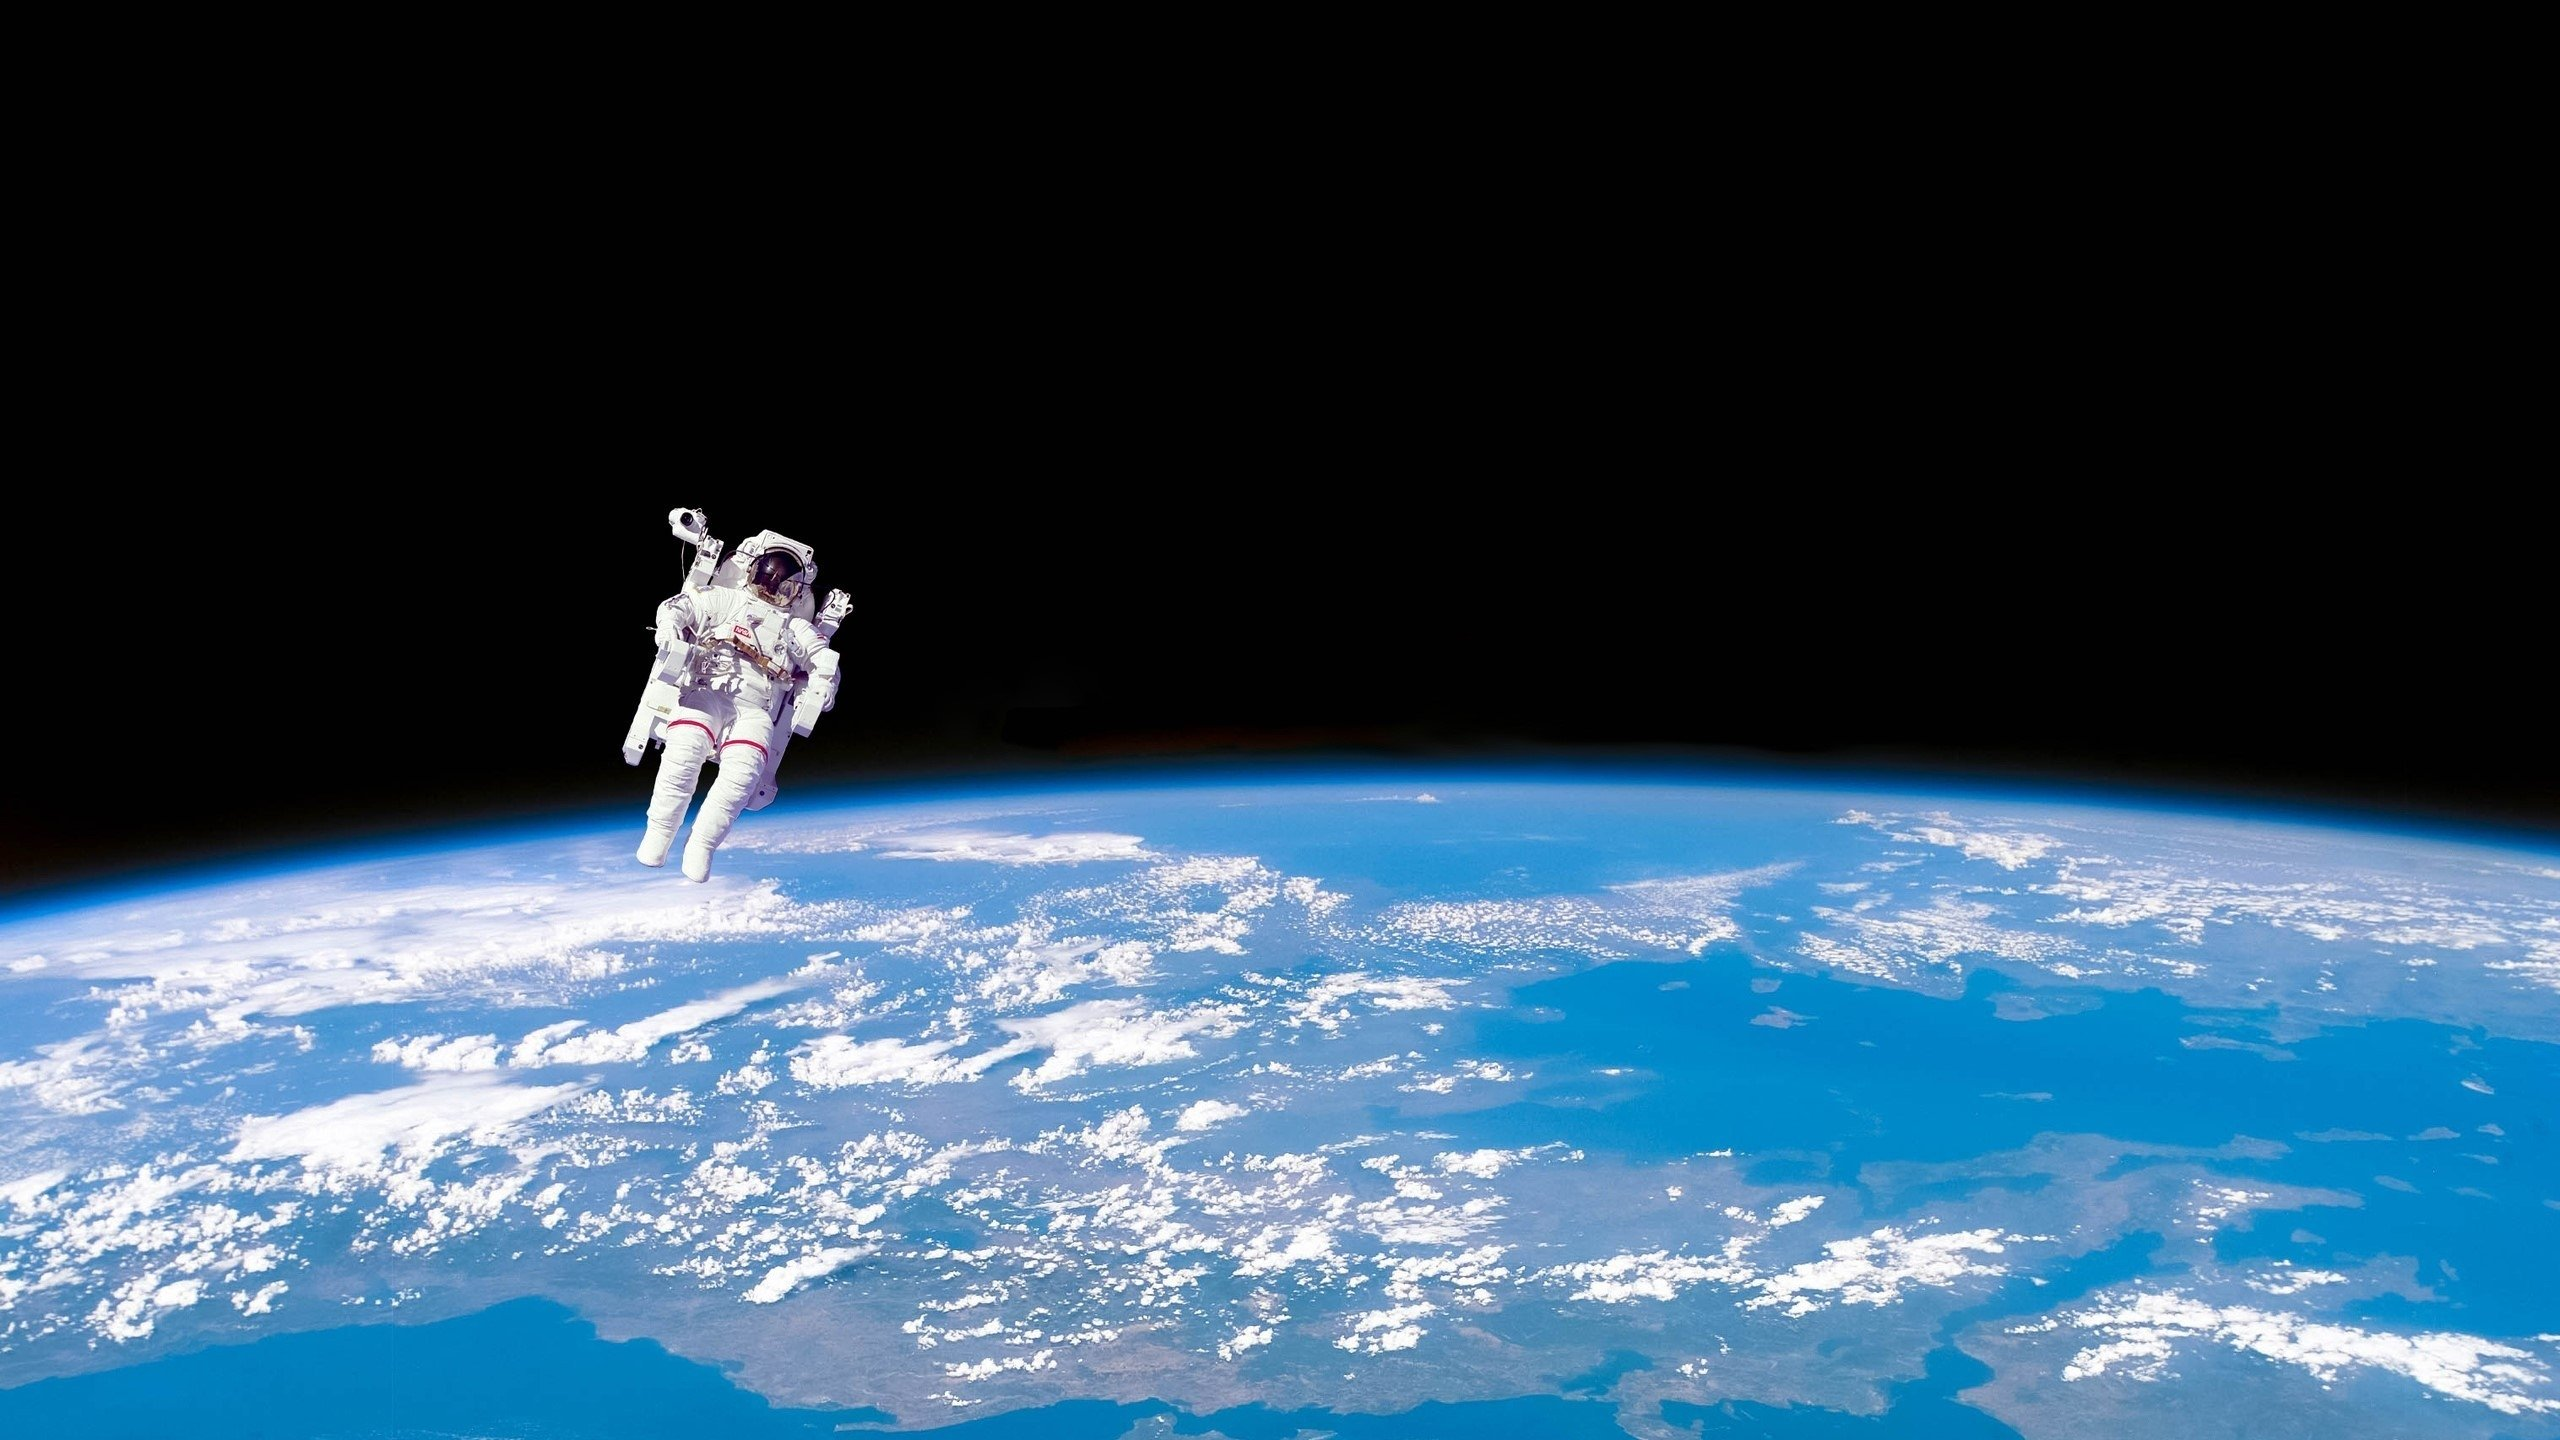 10 New Real Space Wallpapers 1920x1080 Full Hd 1080p For: Astronaut In Space HD Wallpaper